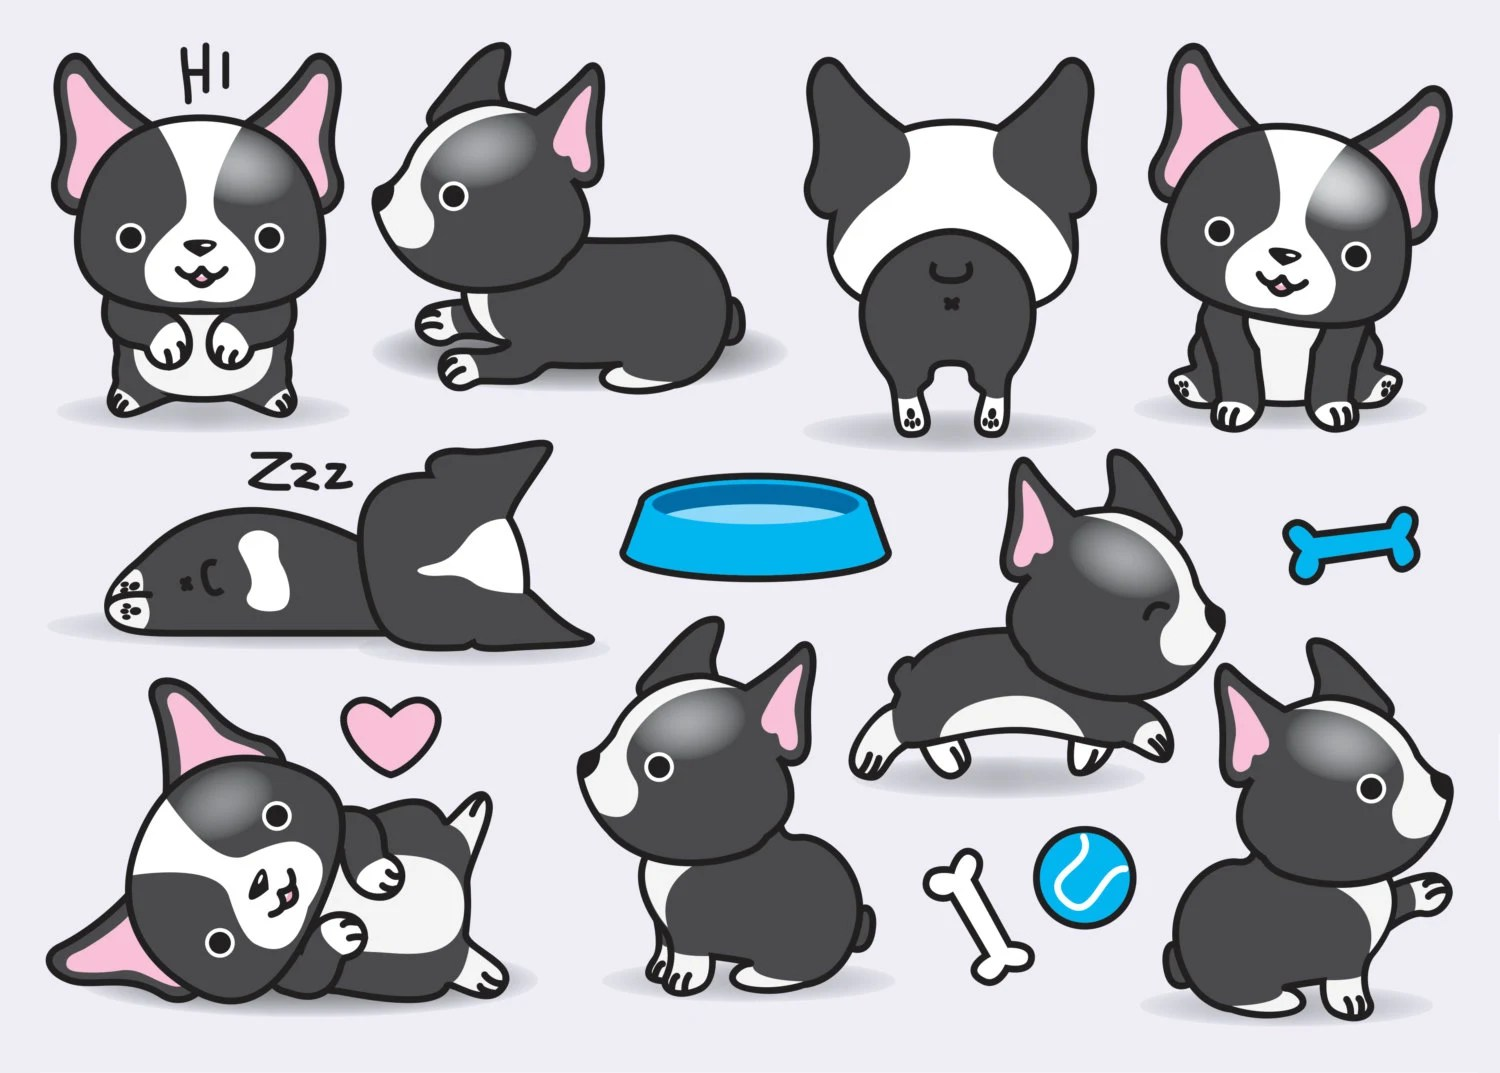 Cute Cartoon Penguins Wallpaper Premium Vector Clipart Kawaii Boston Terriers Cute Bostons